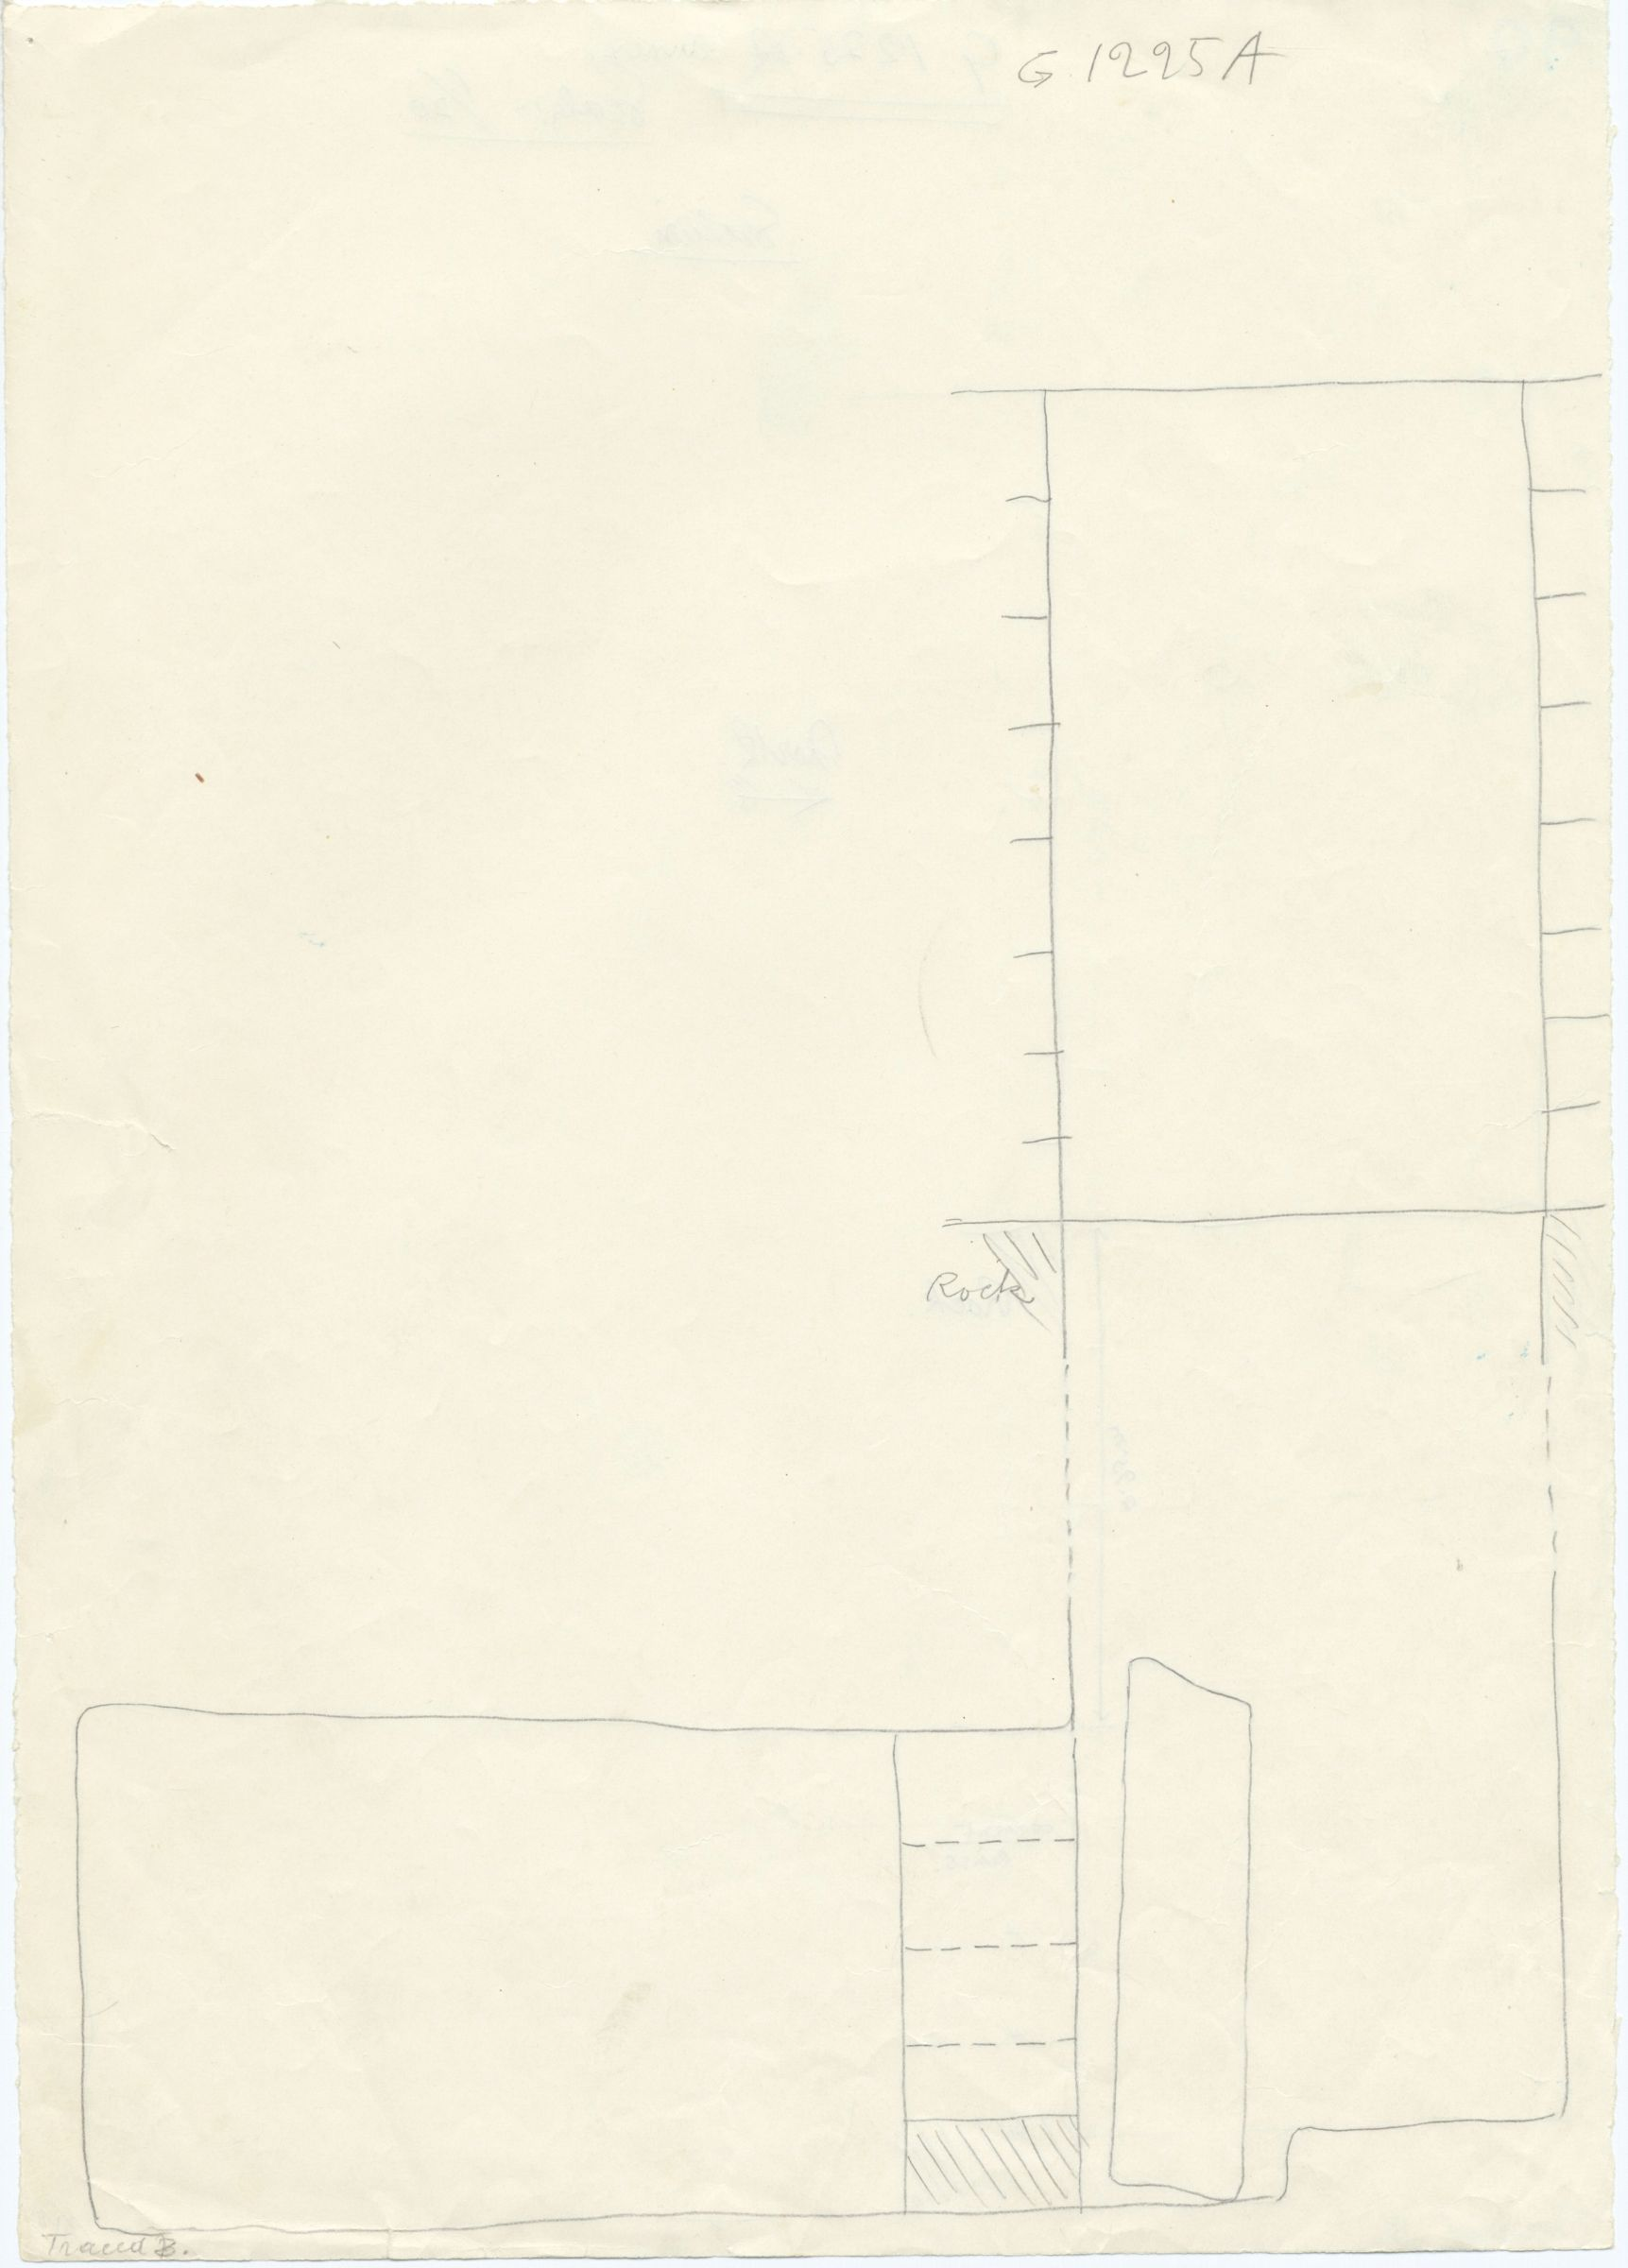 Maps and plans: G 1225-Annex, Shaft A